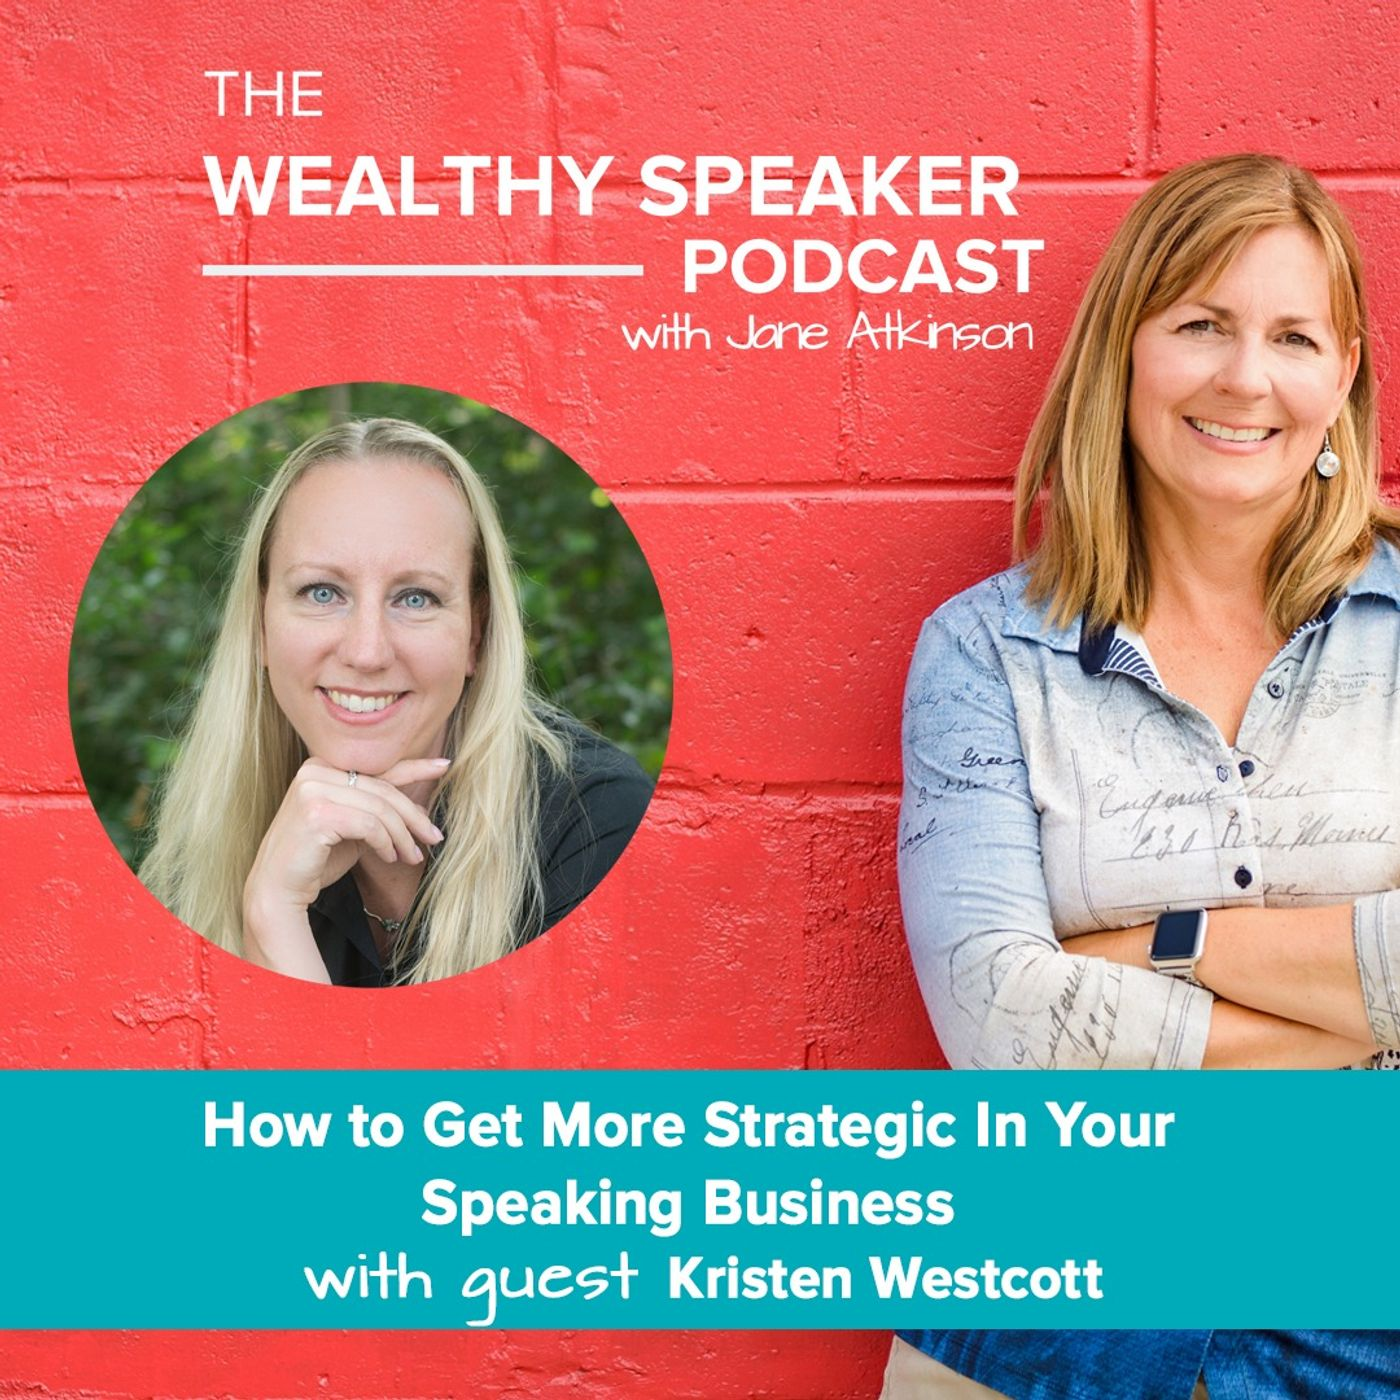 The Wealthy Speaker Podcast How to get more strategic in your business Kristen Westcott